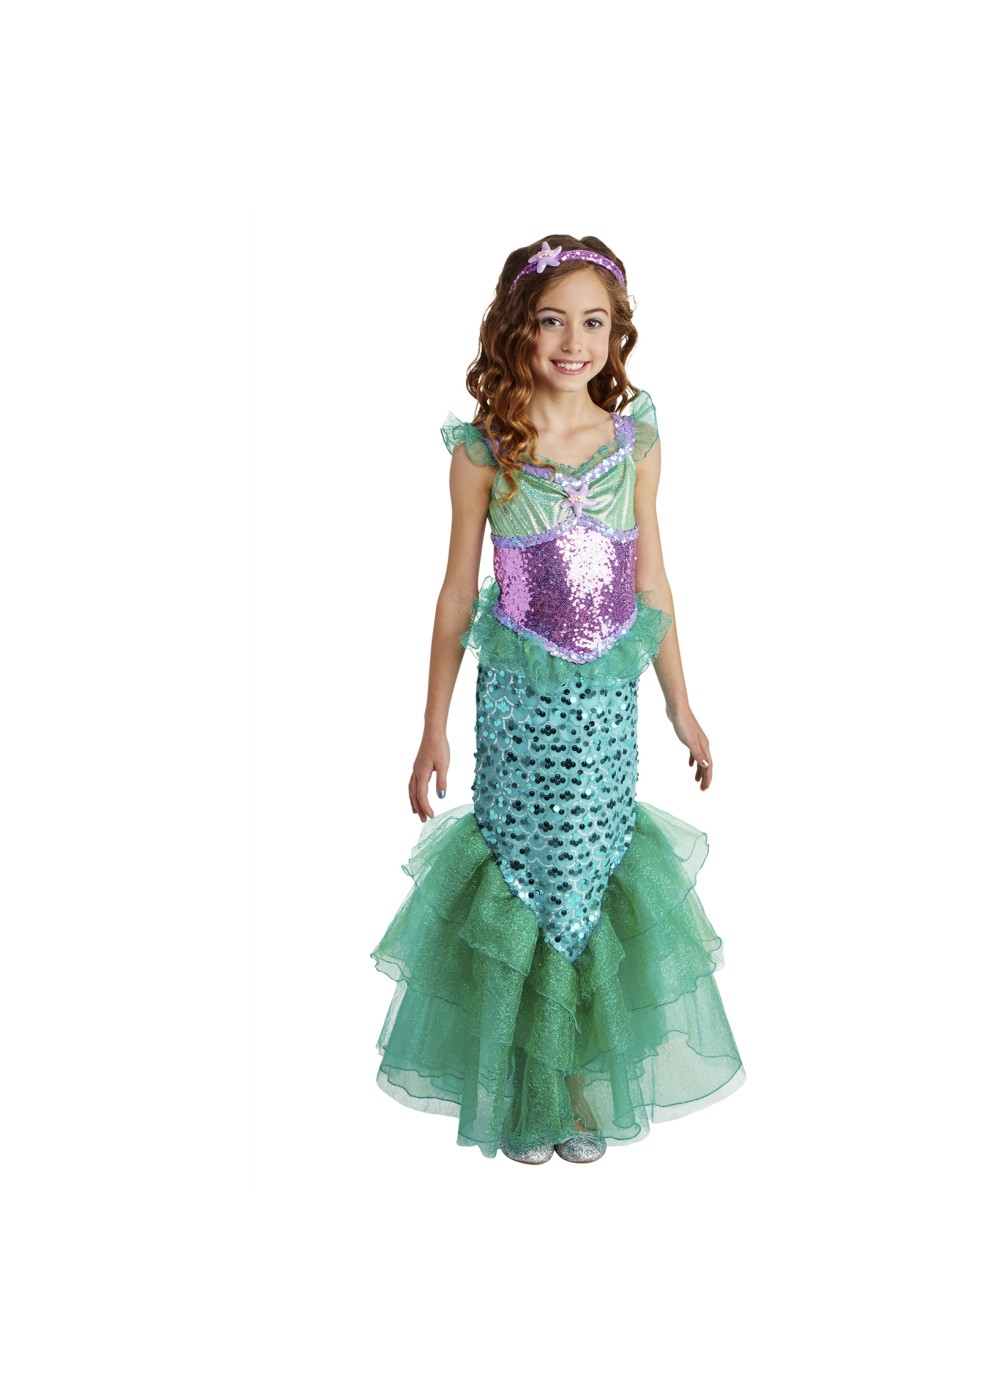 Girls Mermaid Costume Dress  sc 1 st  Wonder Costumes & Girls Mermaid Costume Dress - Disney Costumes